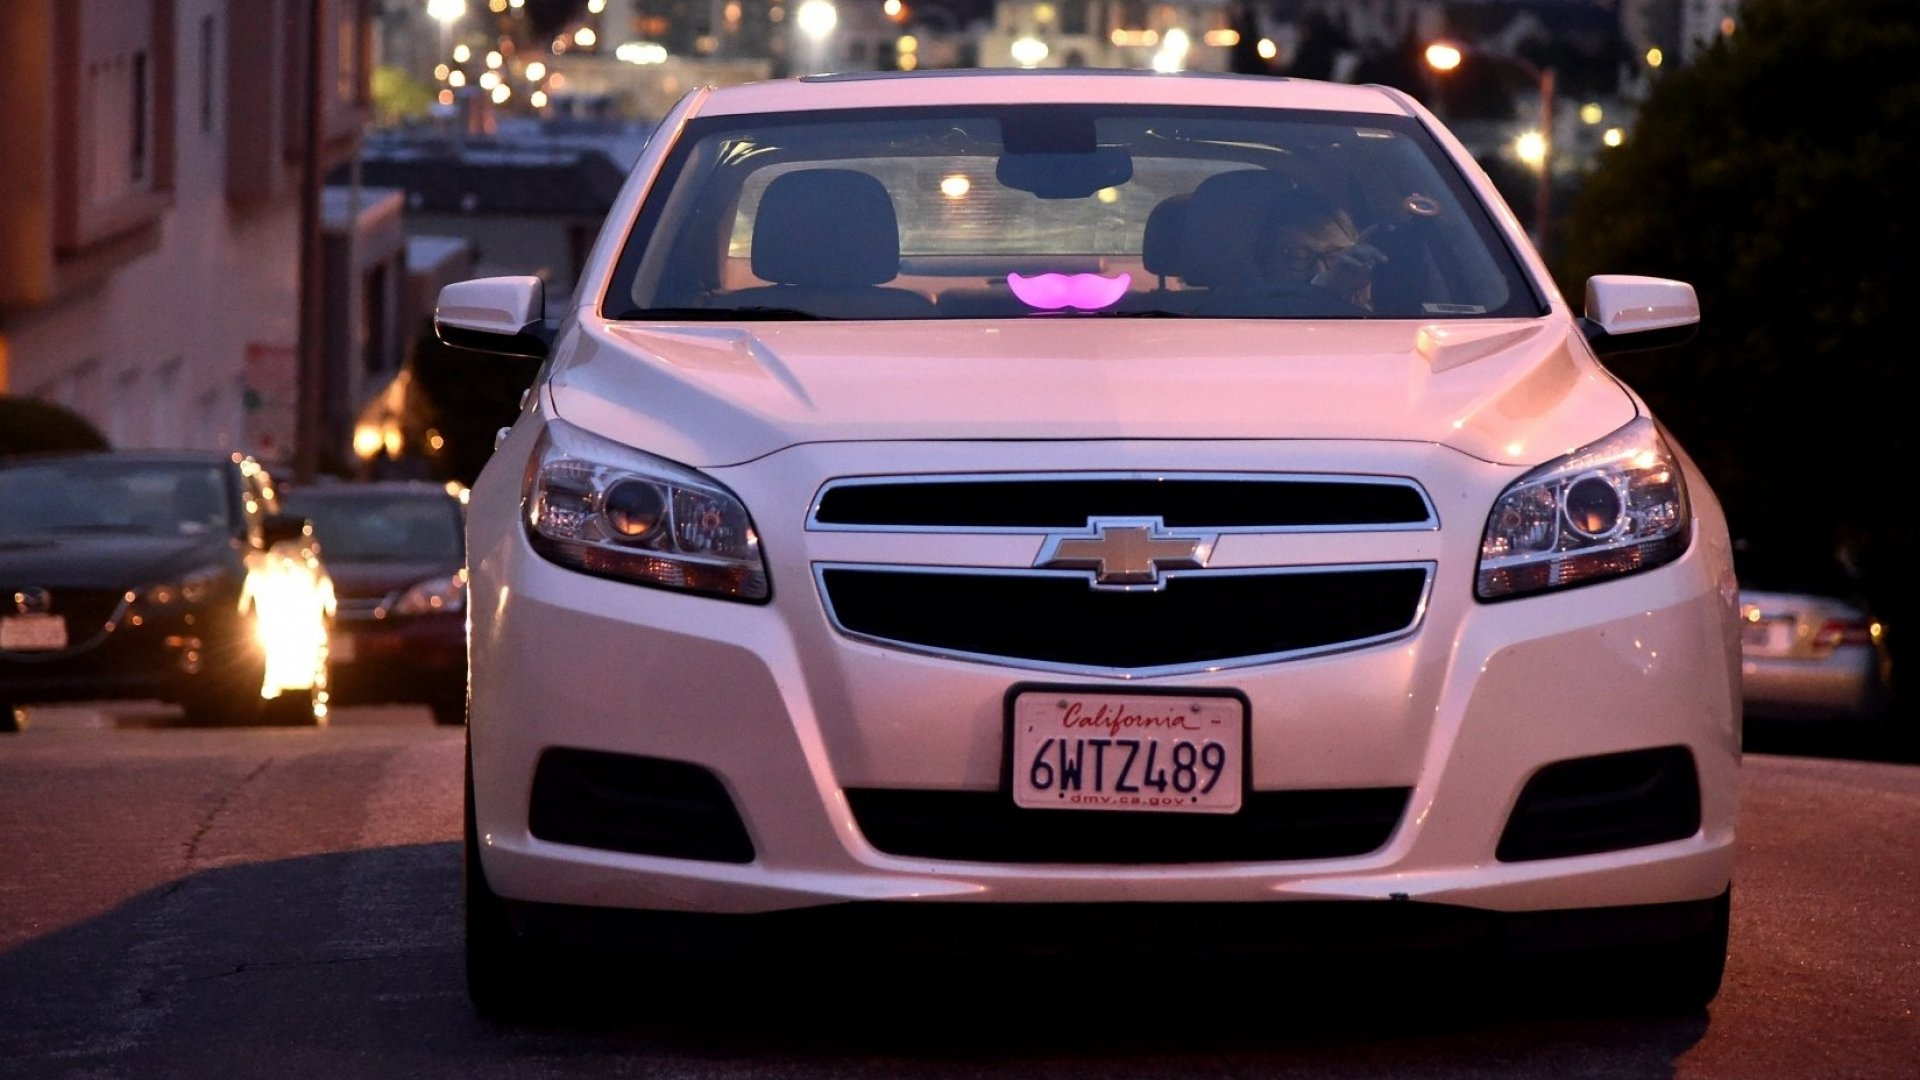 A Lyft driver on the streets of San Francisco.